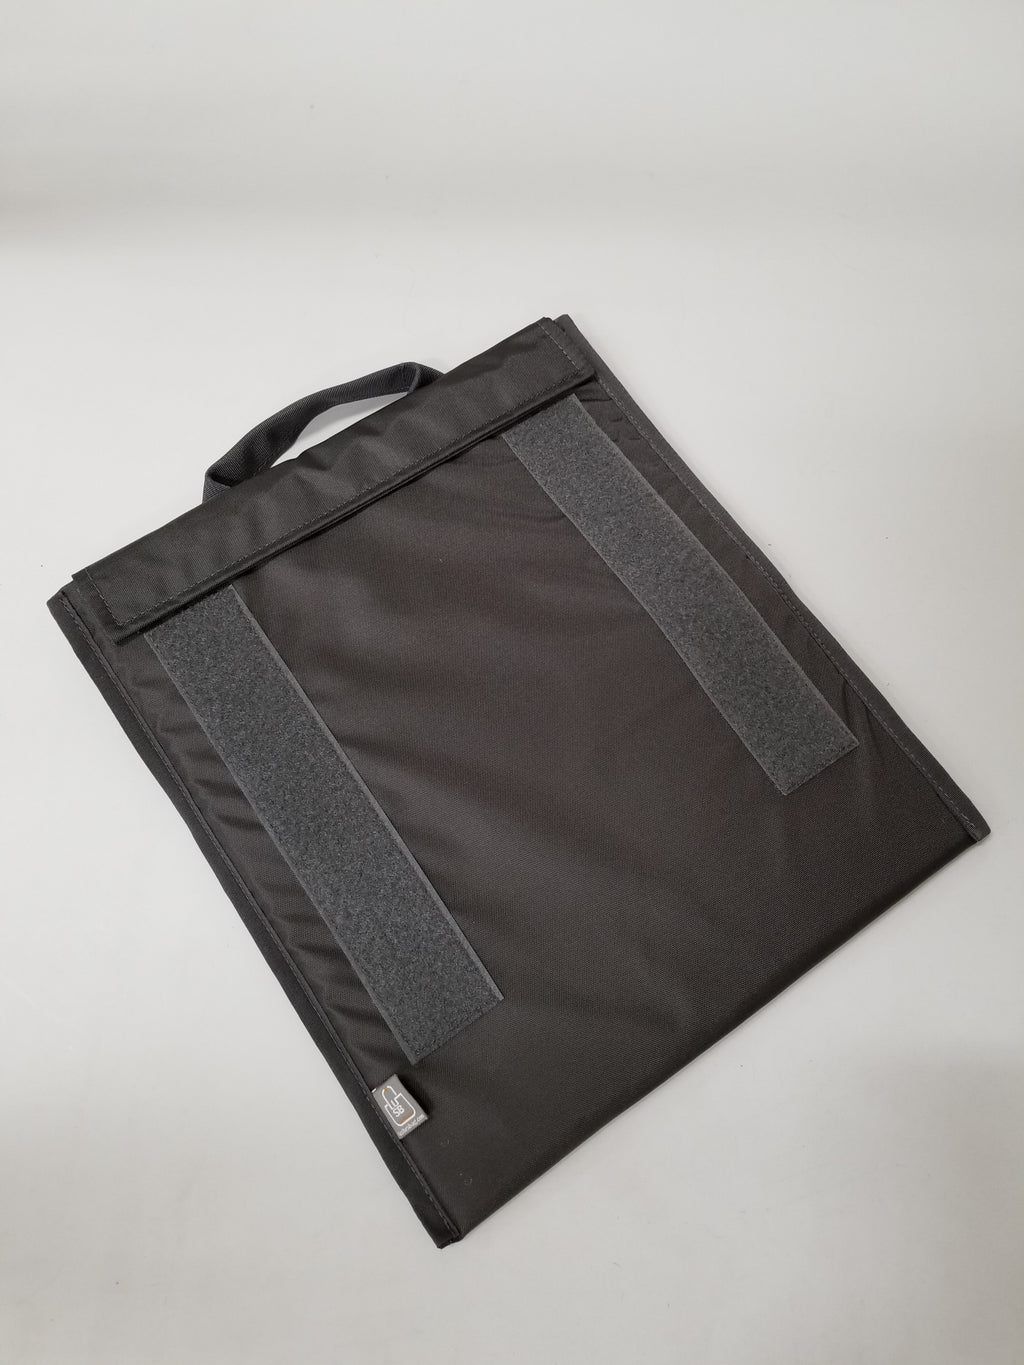 LUSB162 Integrated Laptop/Tablet Sleeve